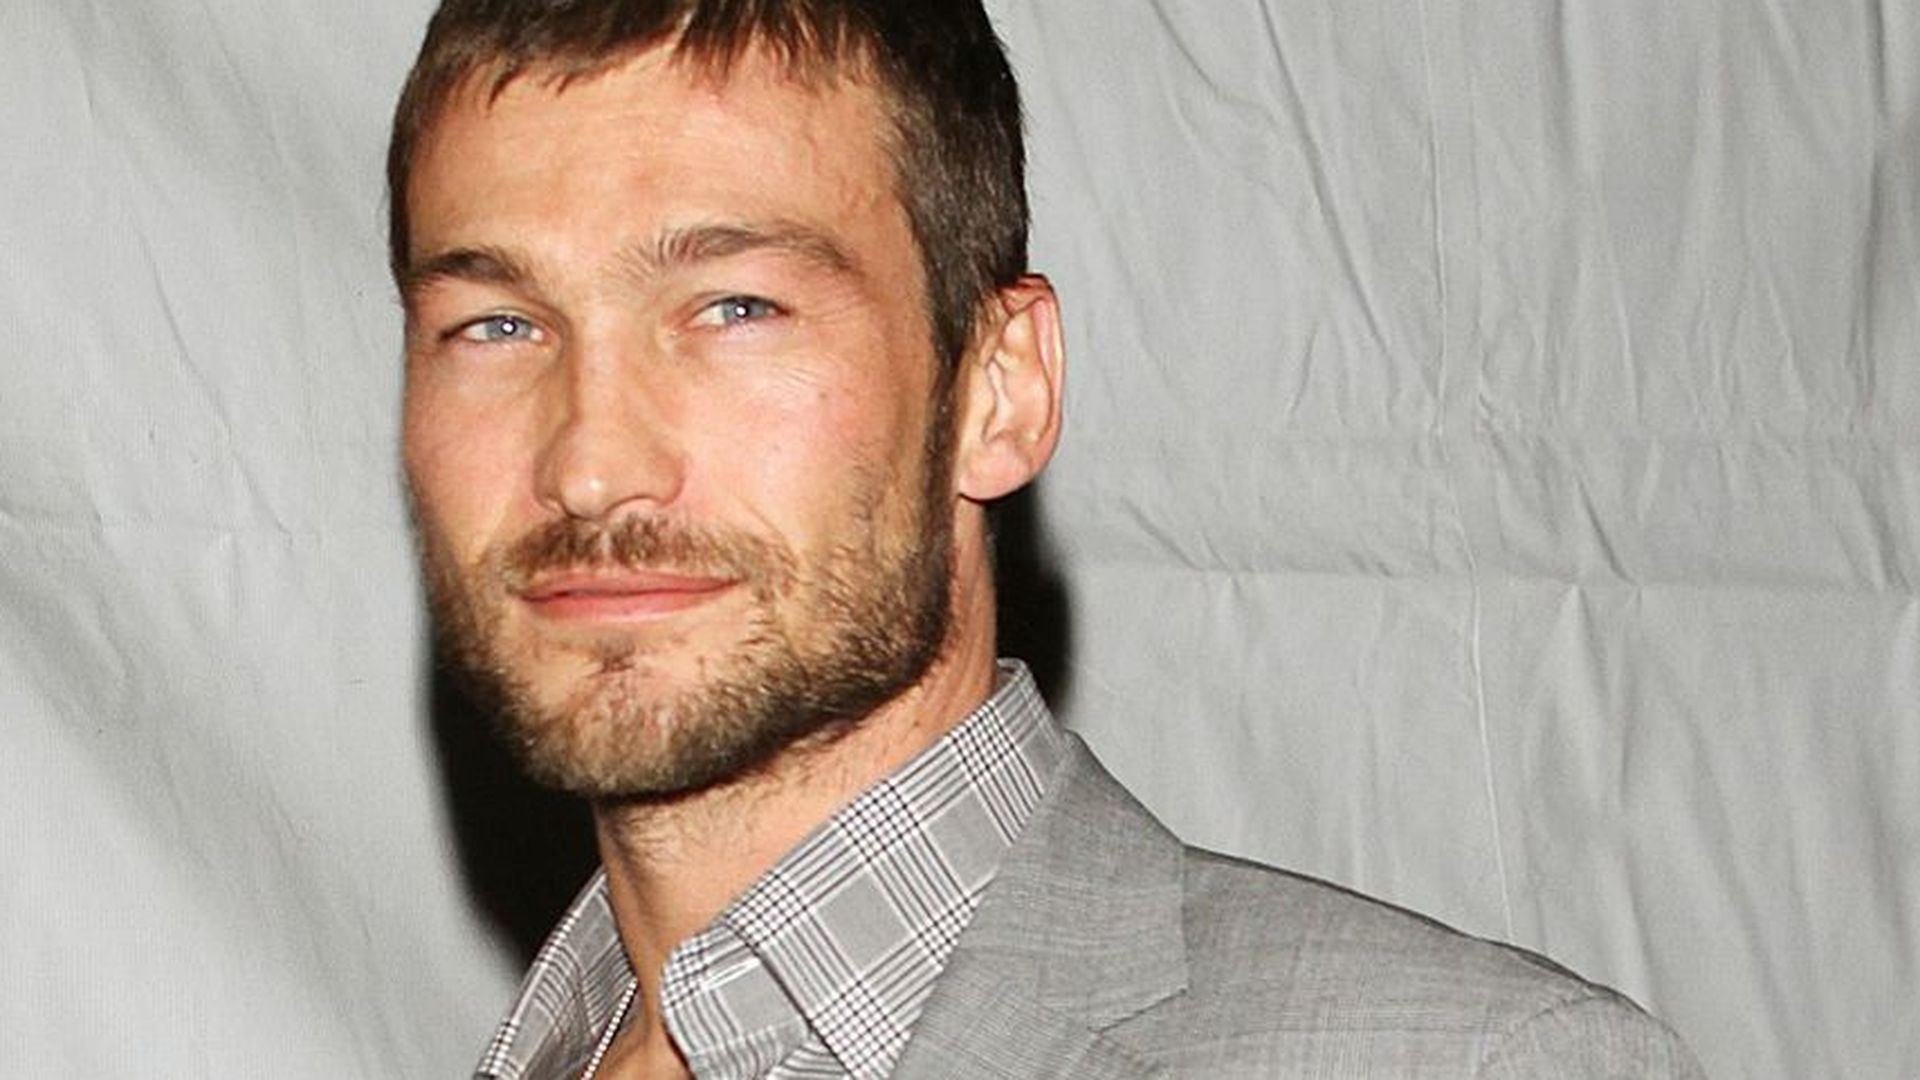 Spartacus Star Andy whitfield photos of family